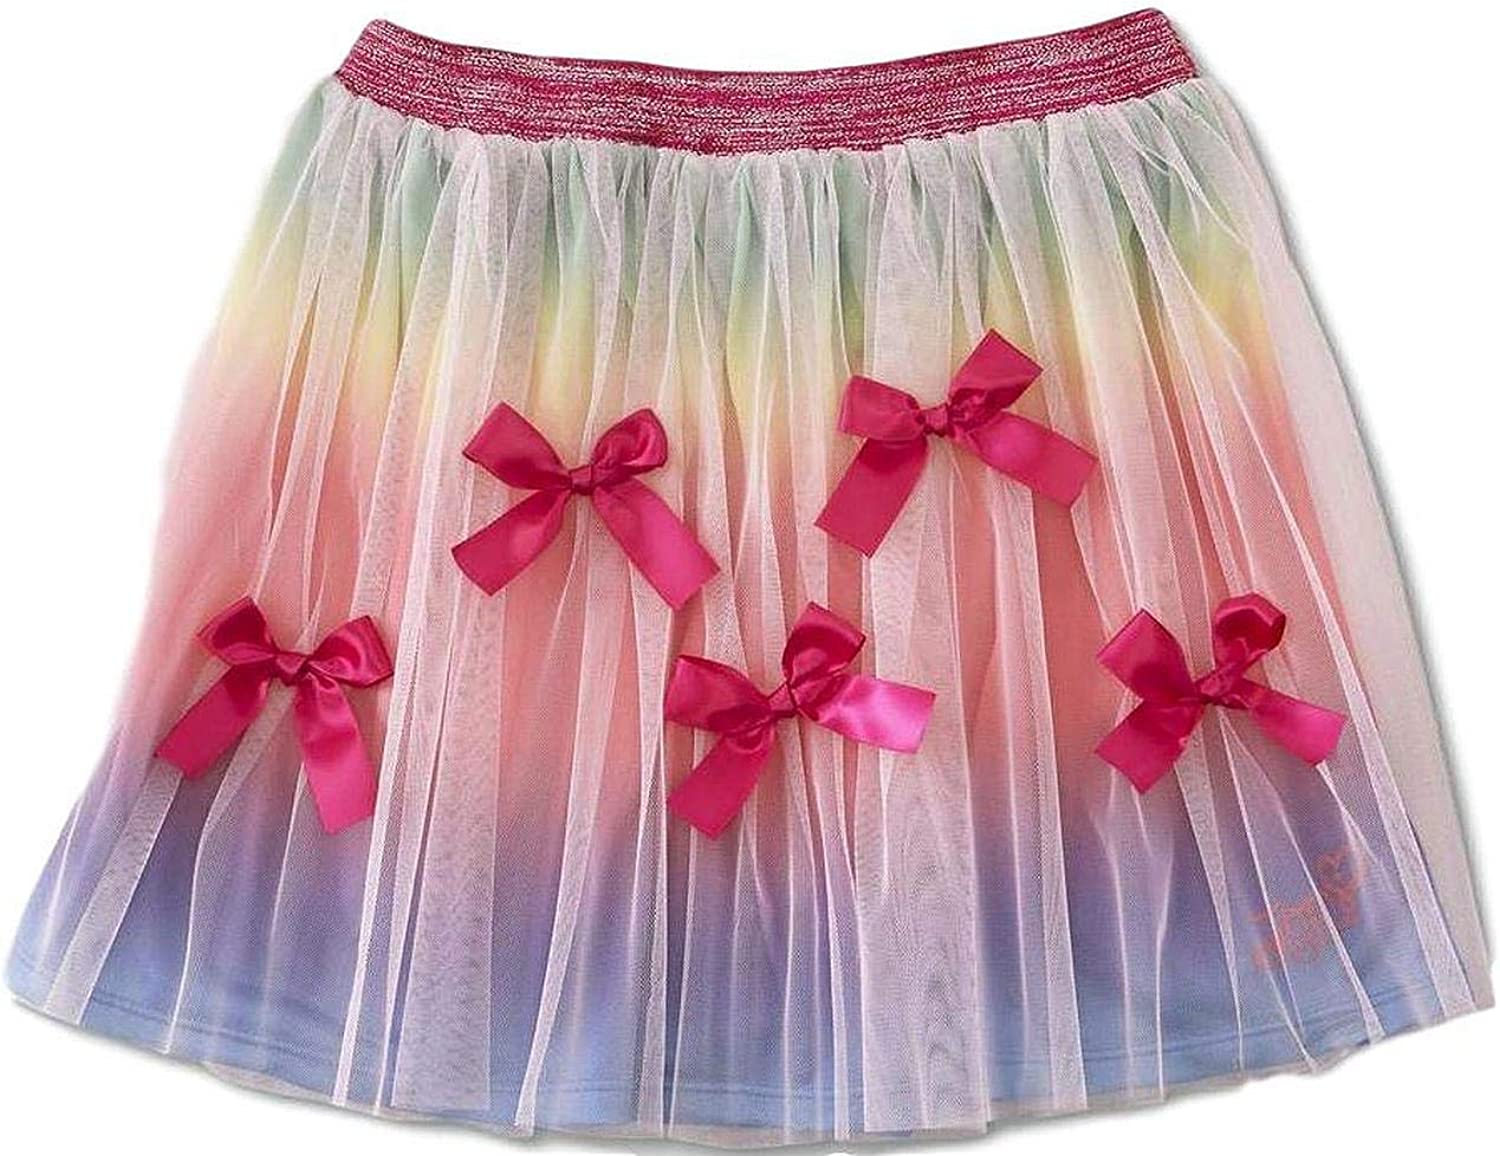 /& Plus Sizes JoJo Siwa Girls Tutu Skirt Pink Bow Rainbow Reg